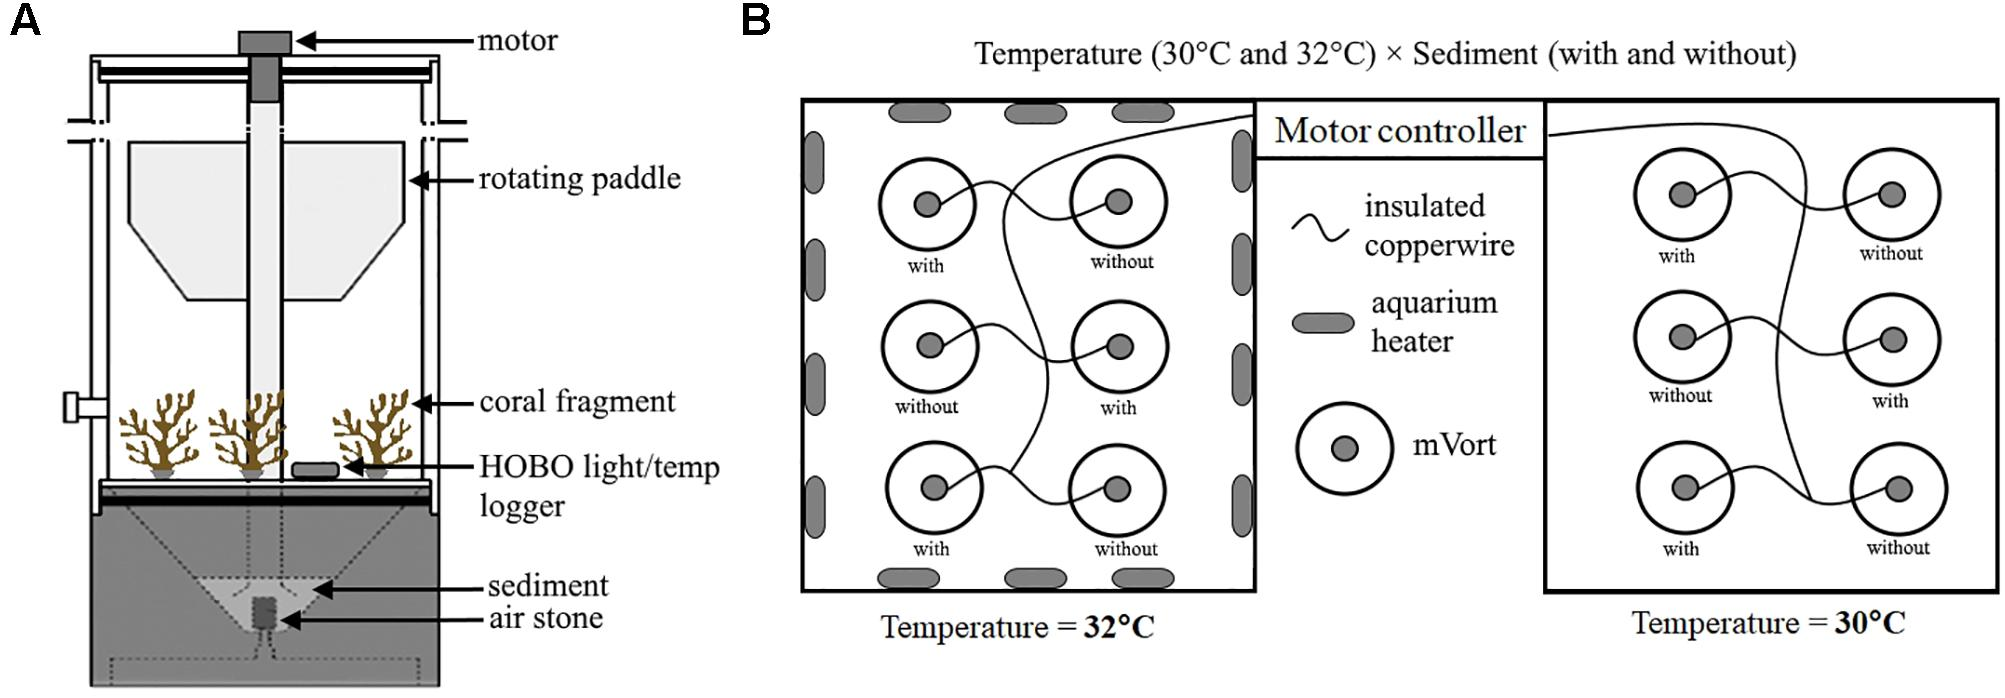 Frontiers | Short Term Exposure to Heat and Sediment Triggers